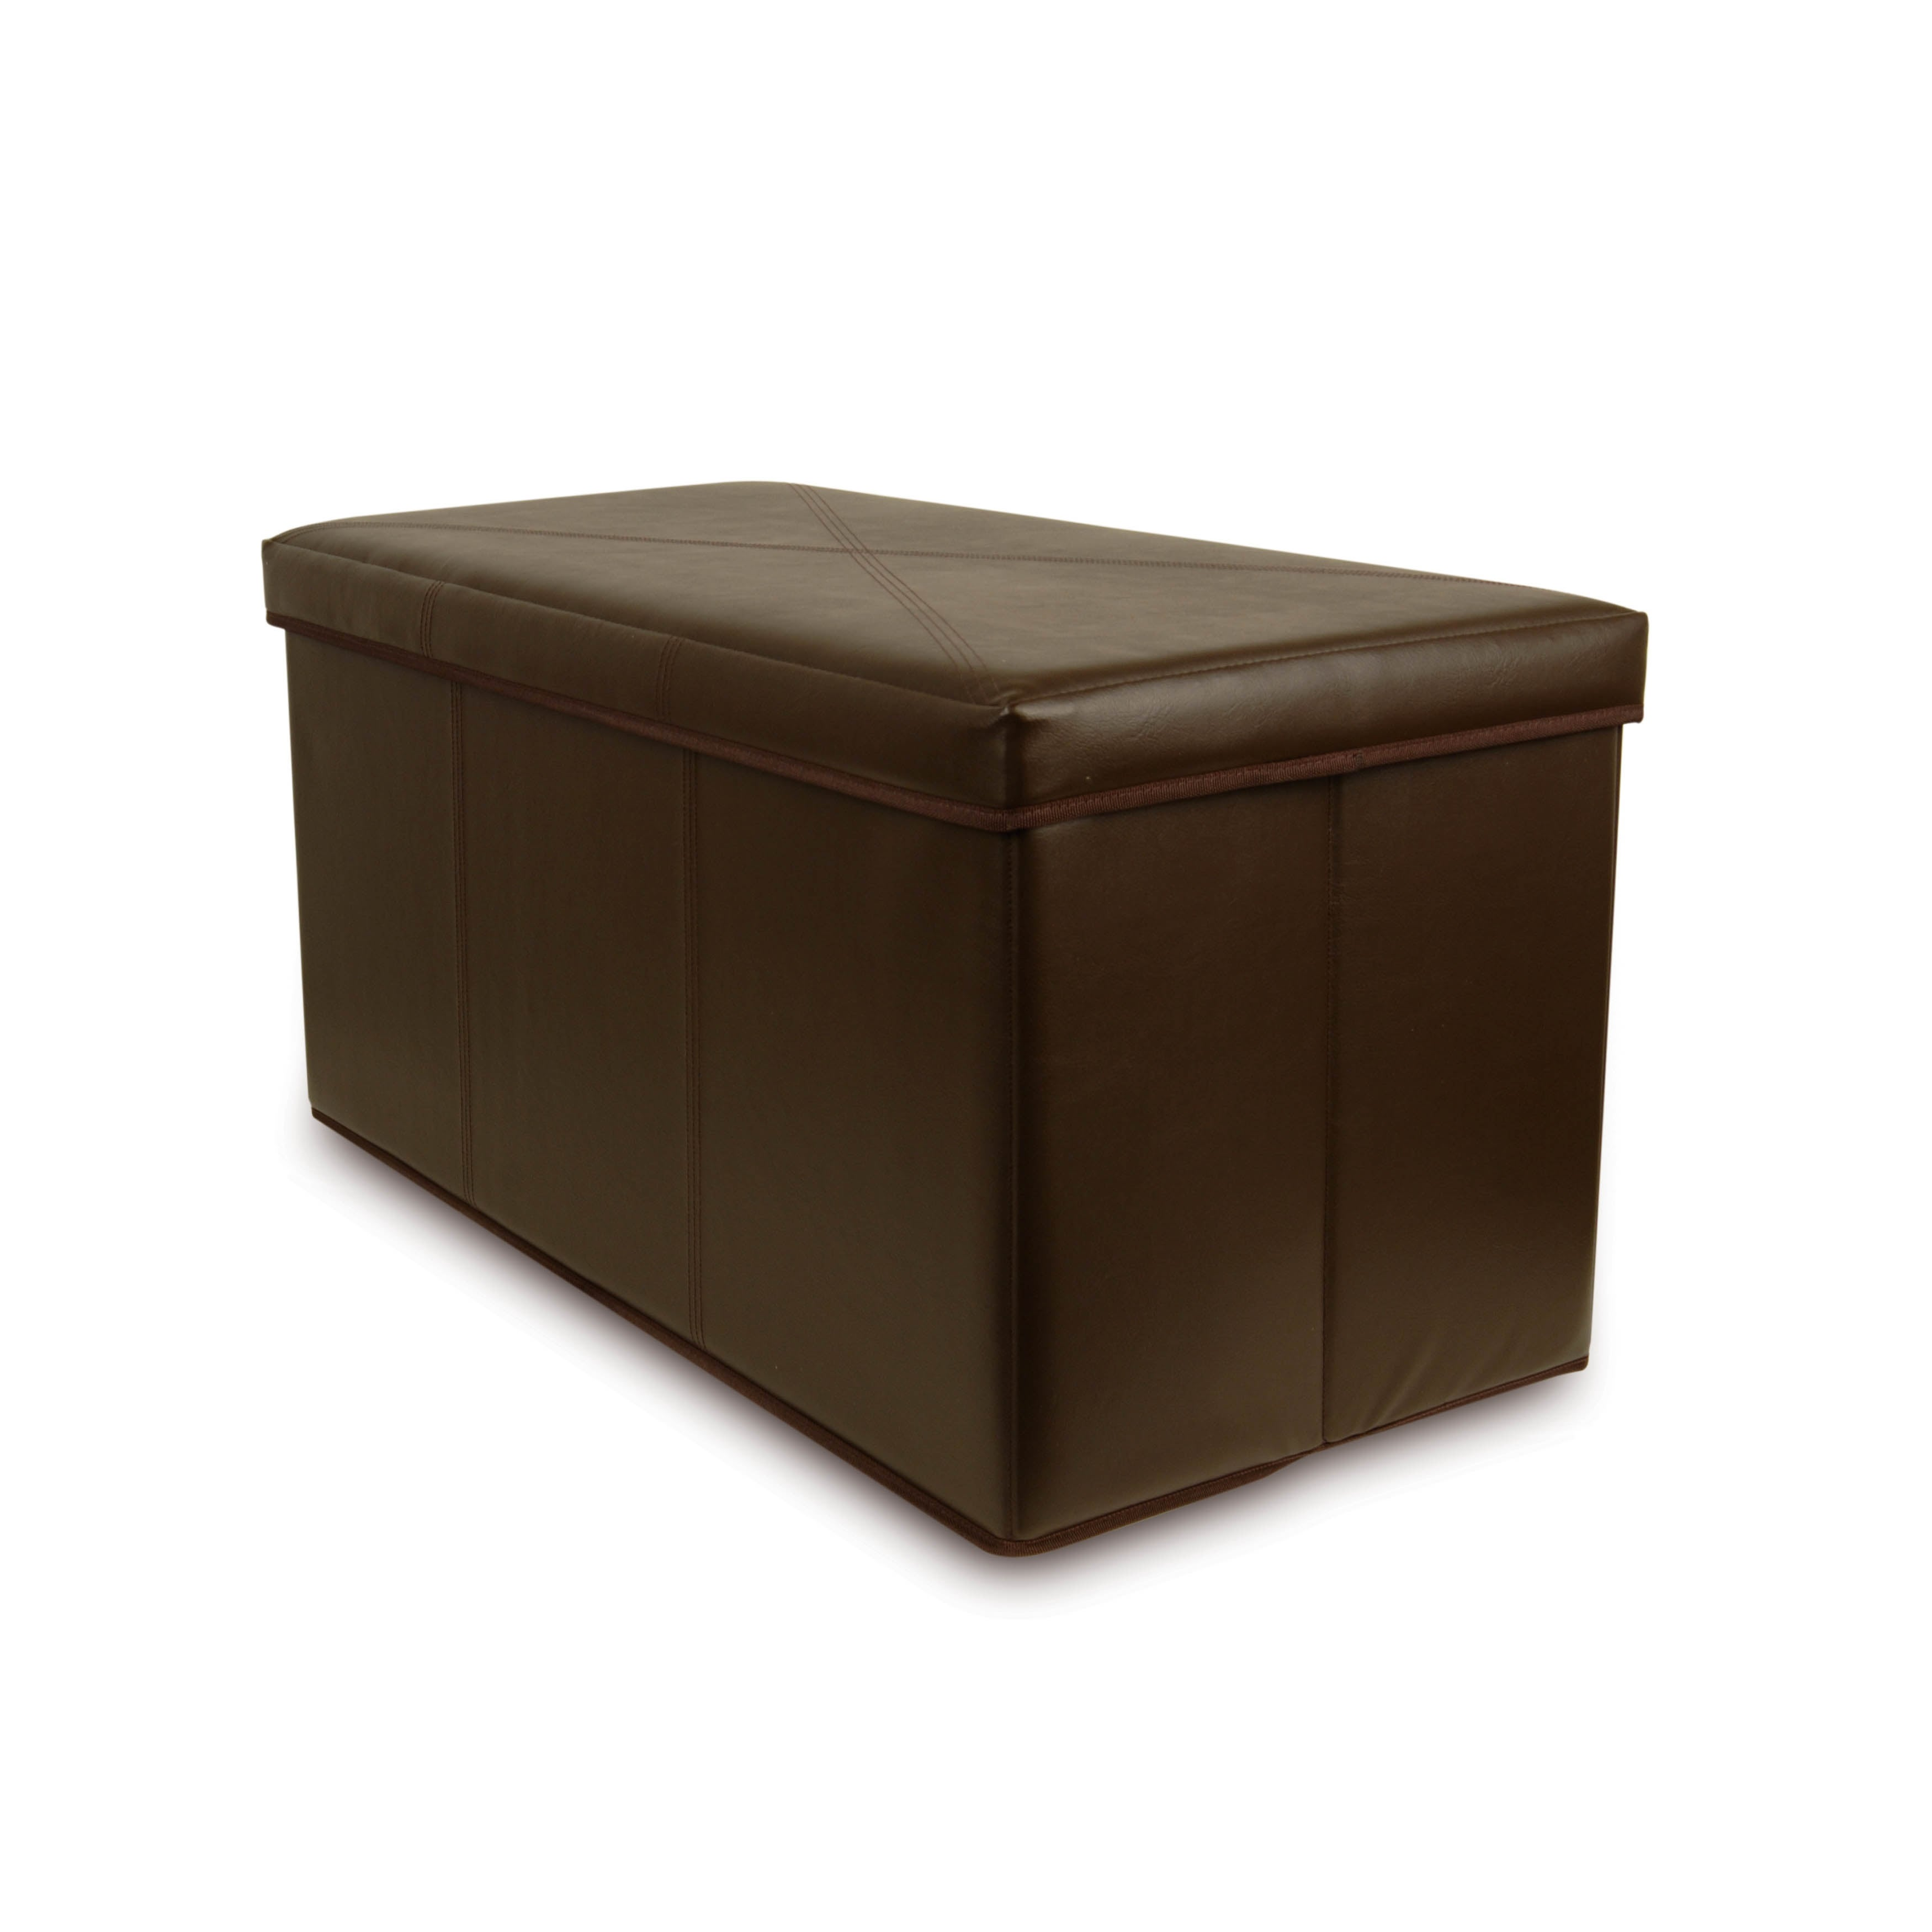 Incredible Collapsible Faux Leather Storage Ottoman Bench Brown Ibusinesslaw Wood Chair Design Ideas Ibusinesslaworg